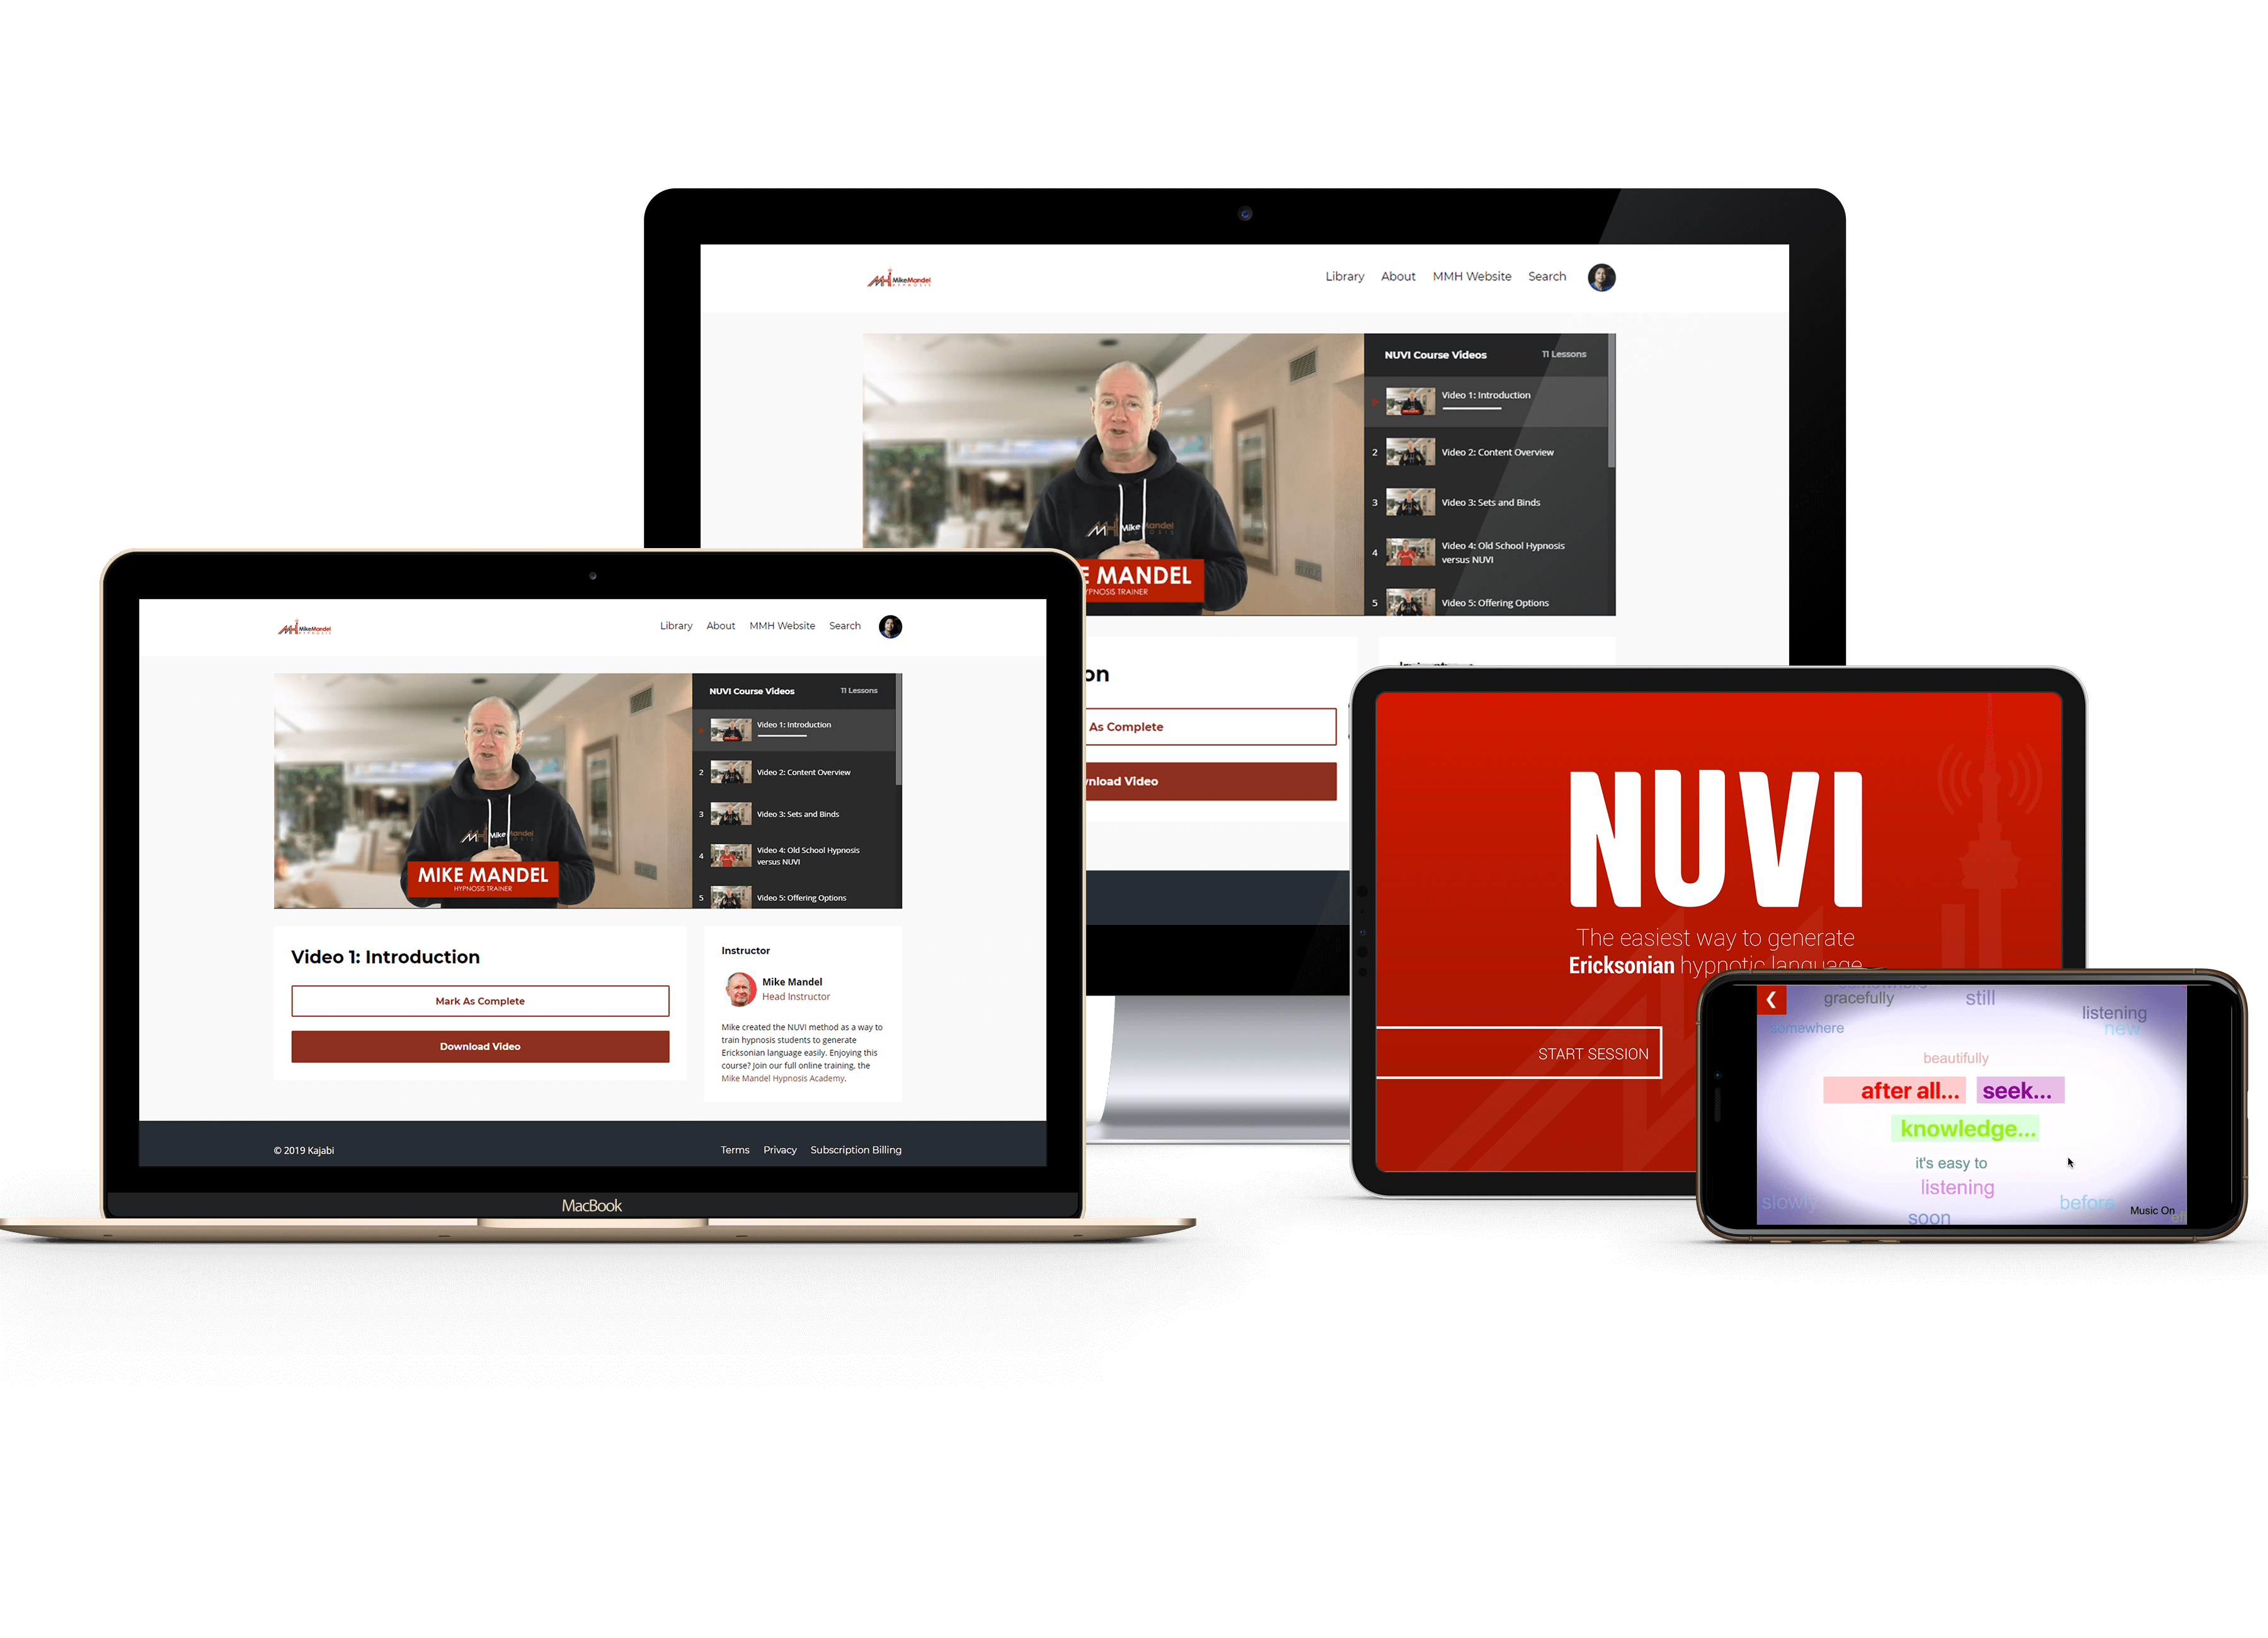 NUVI Course and app hypnosis training tools